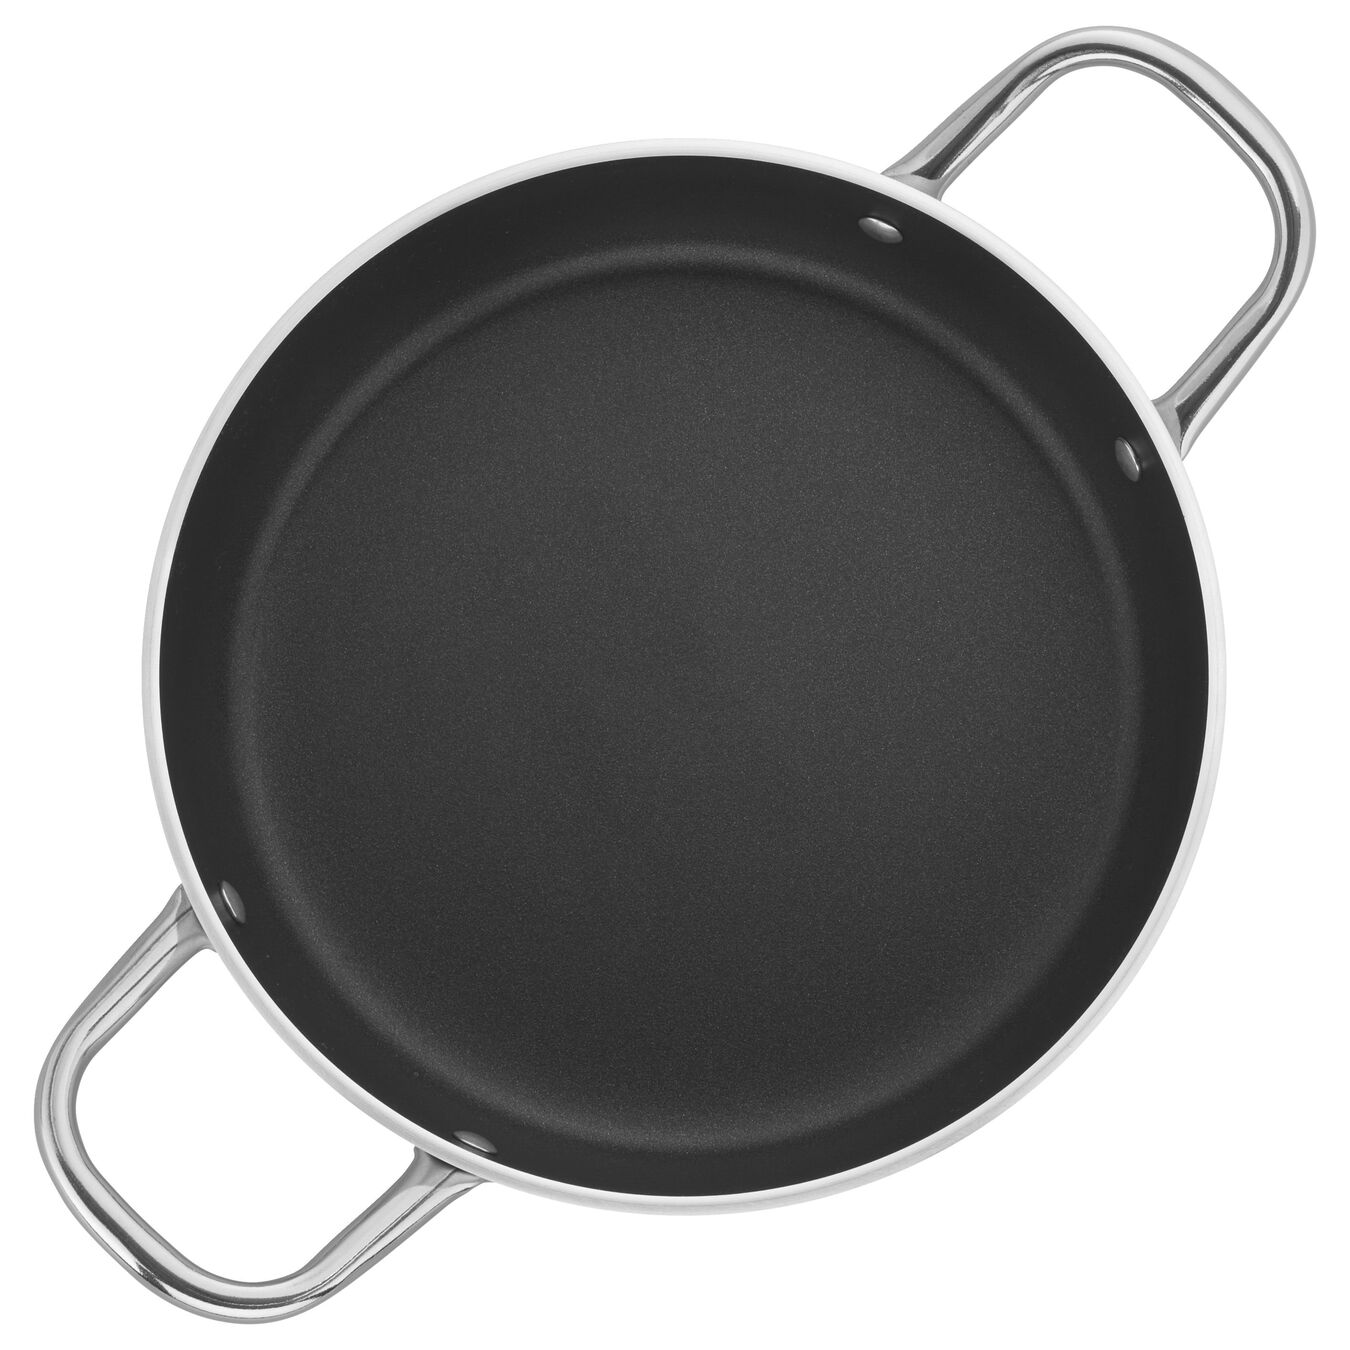 9.5-inch Aluminum Nonstick Braiser Without Lid,,large 1